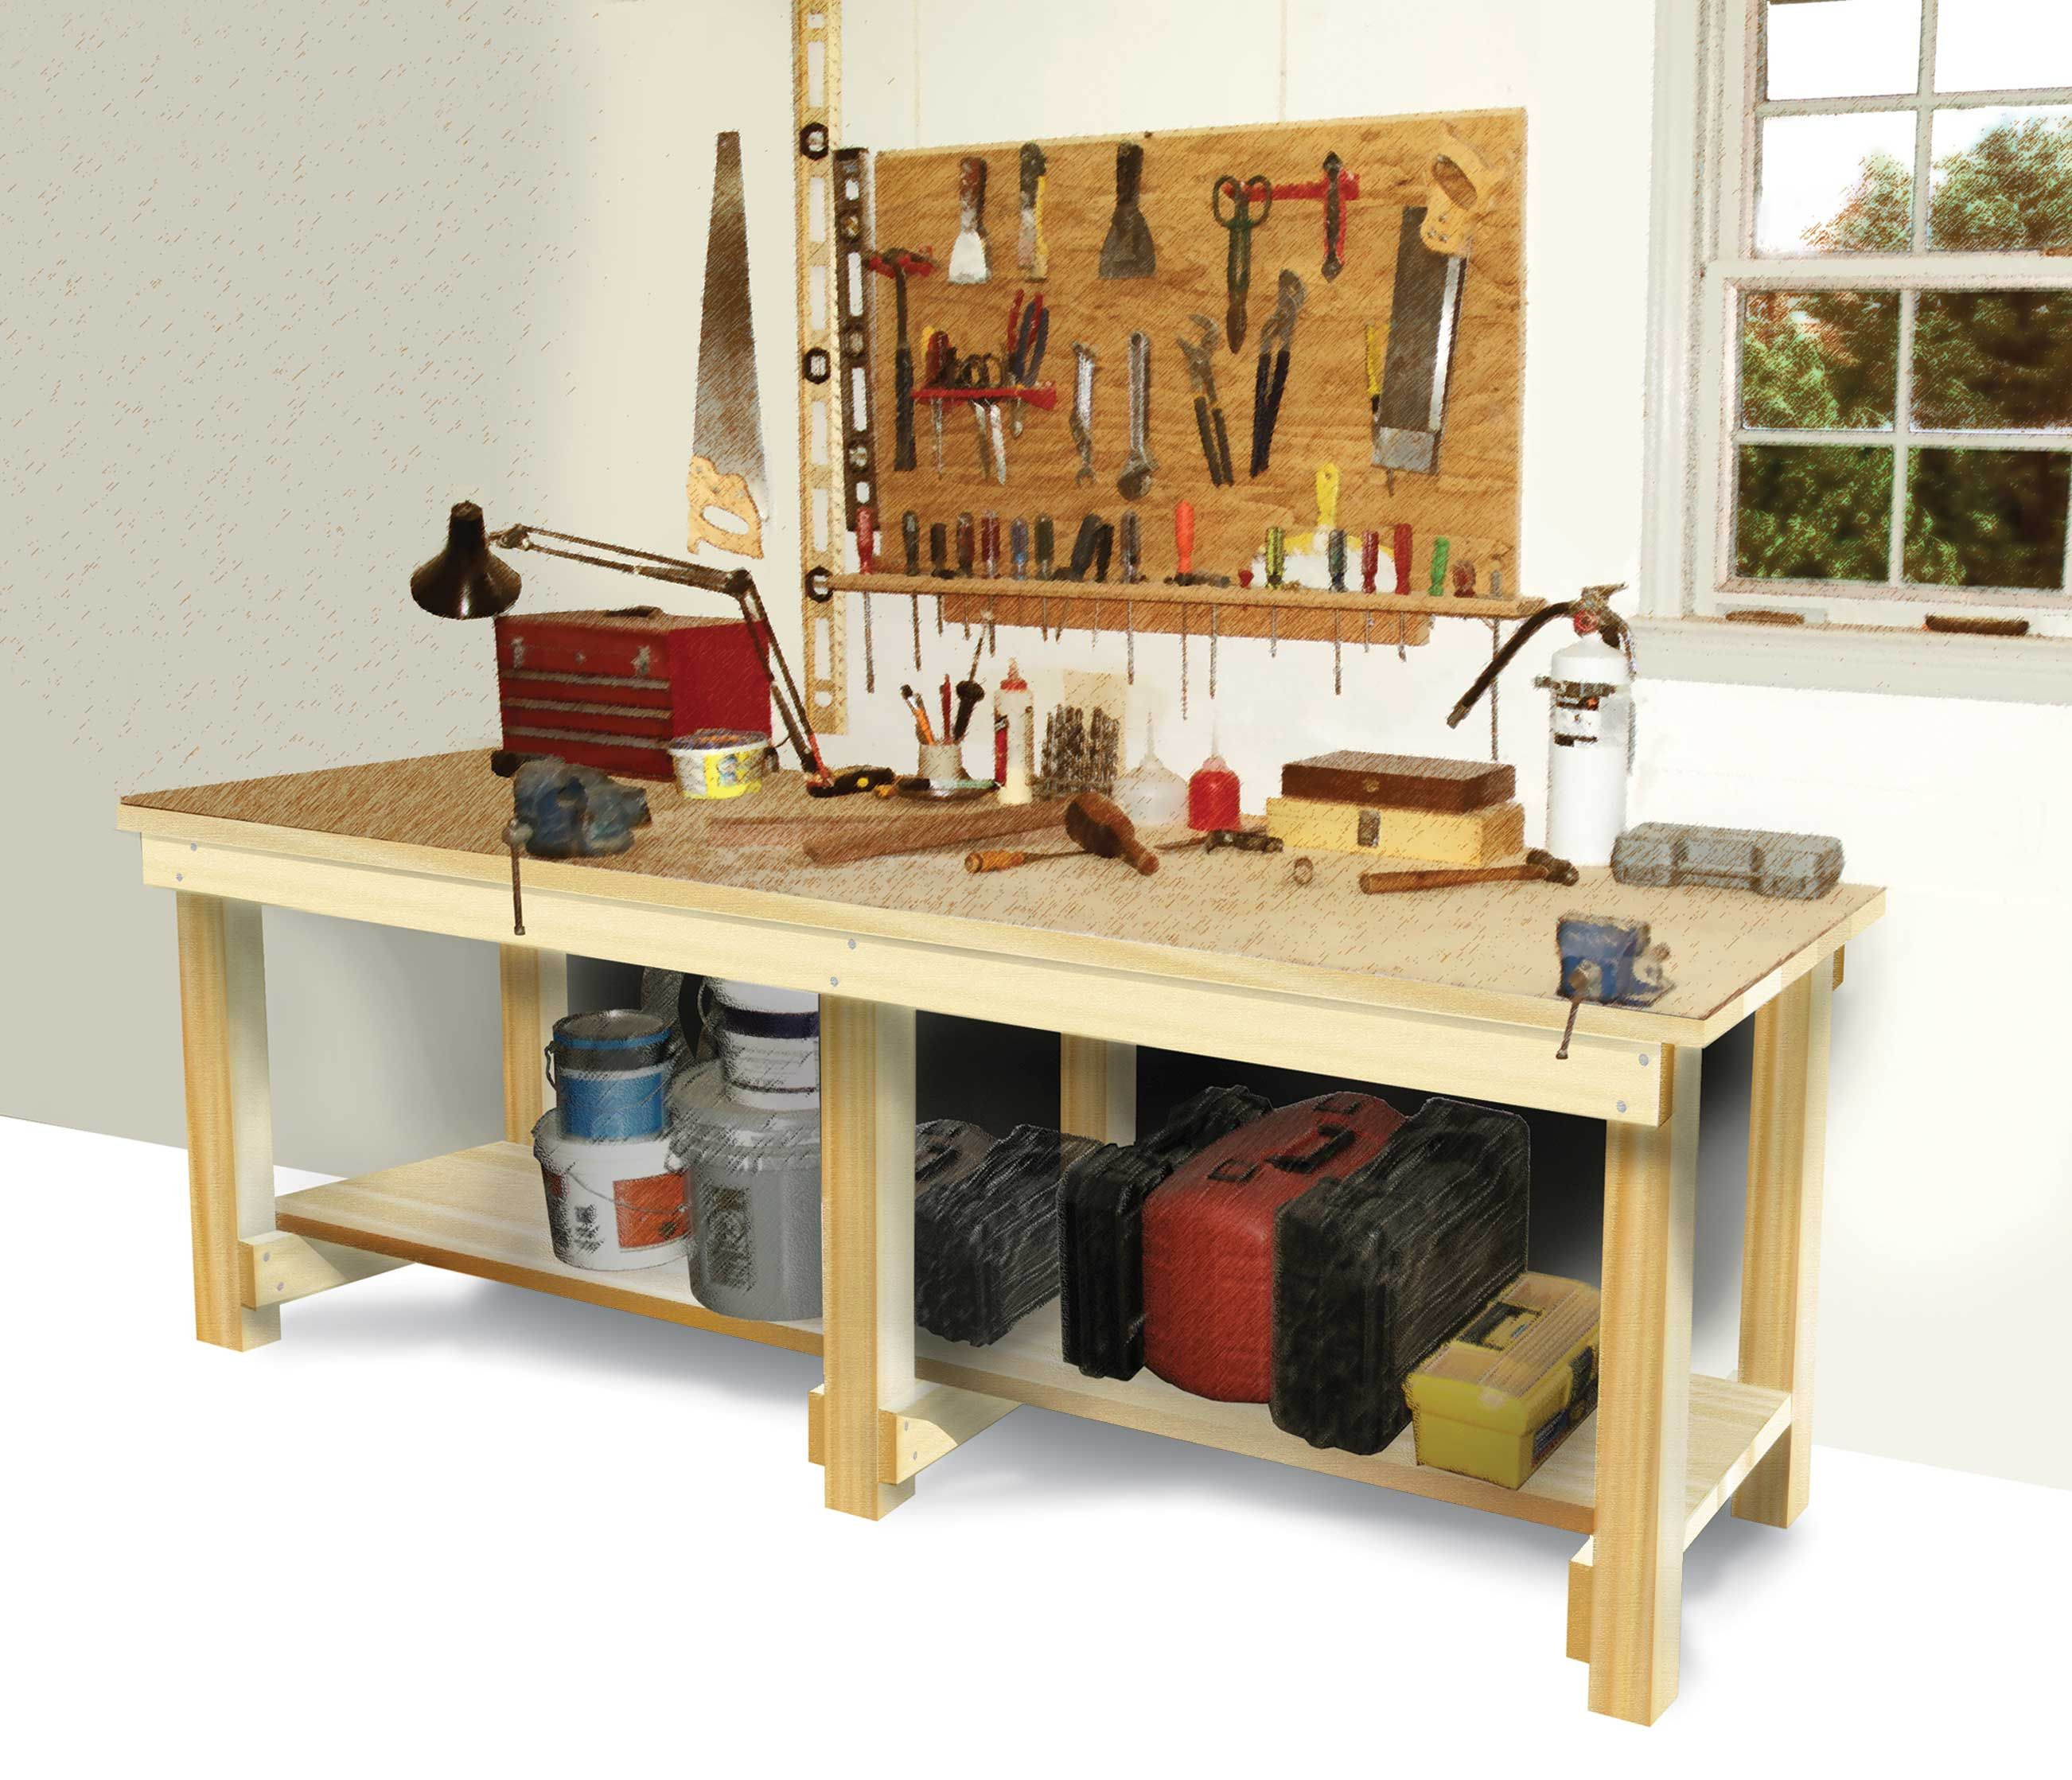 Best ideas about DIY Work Bench Plans . Save or Pin How to Build a Workbench DIY Now.